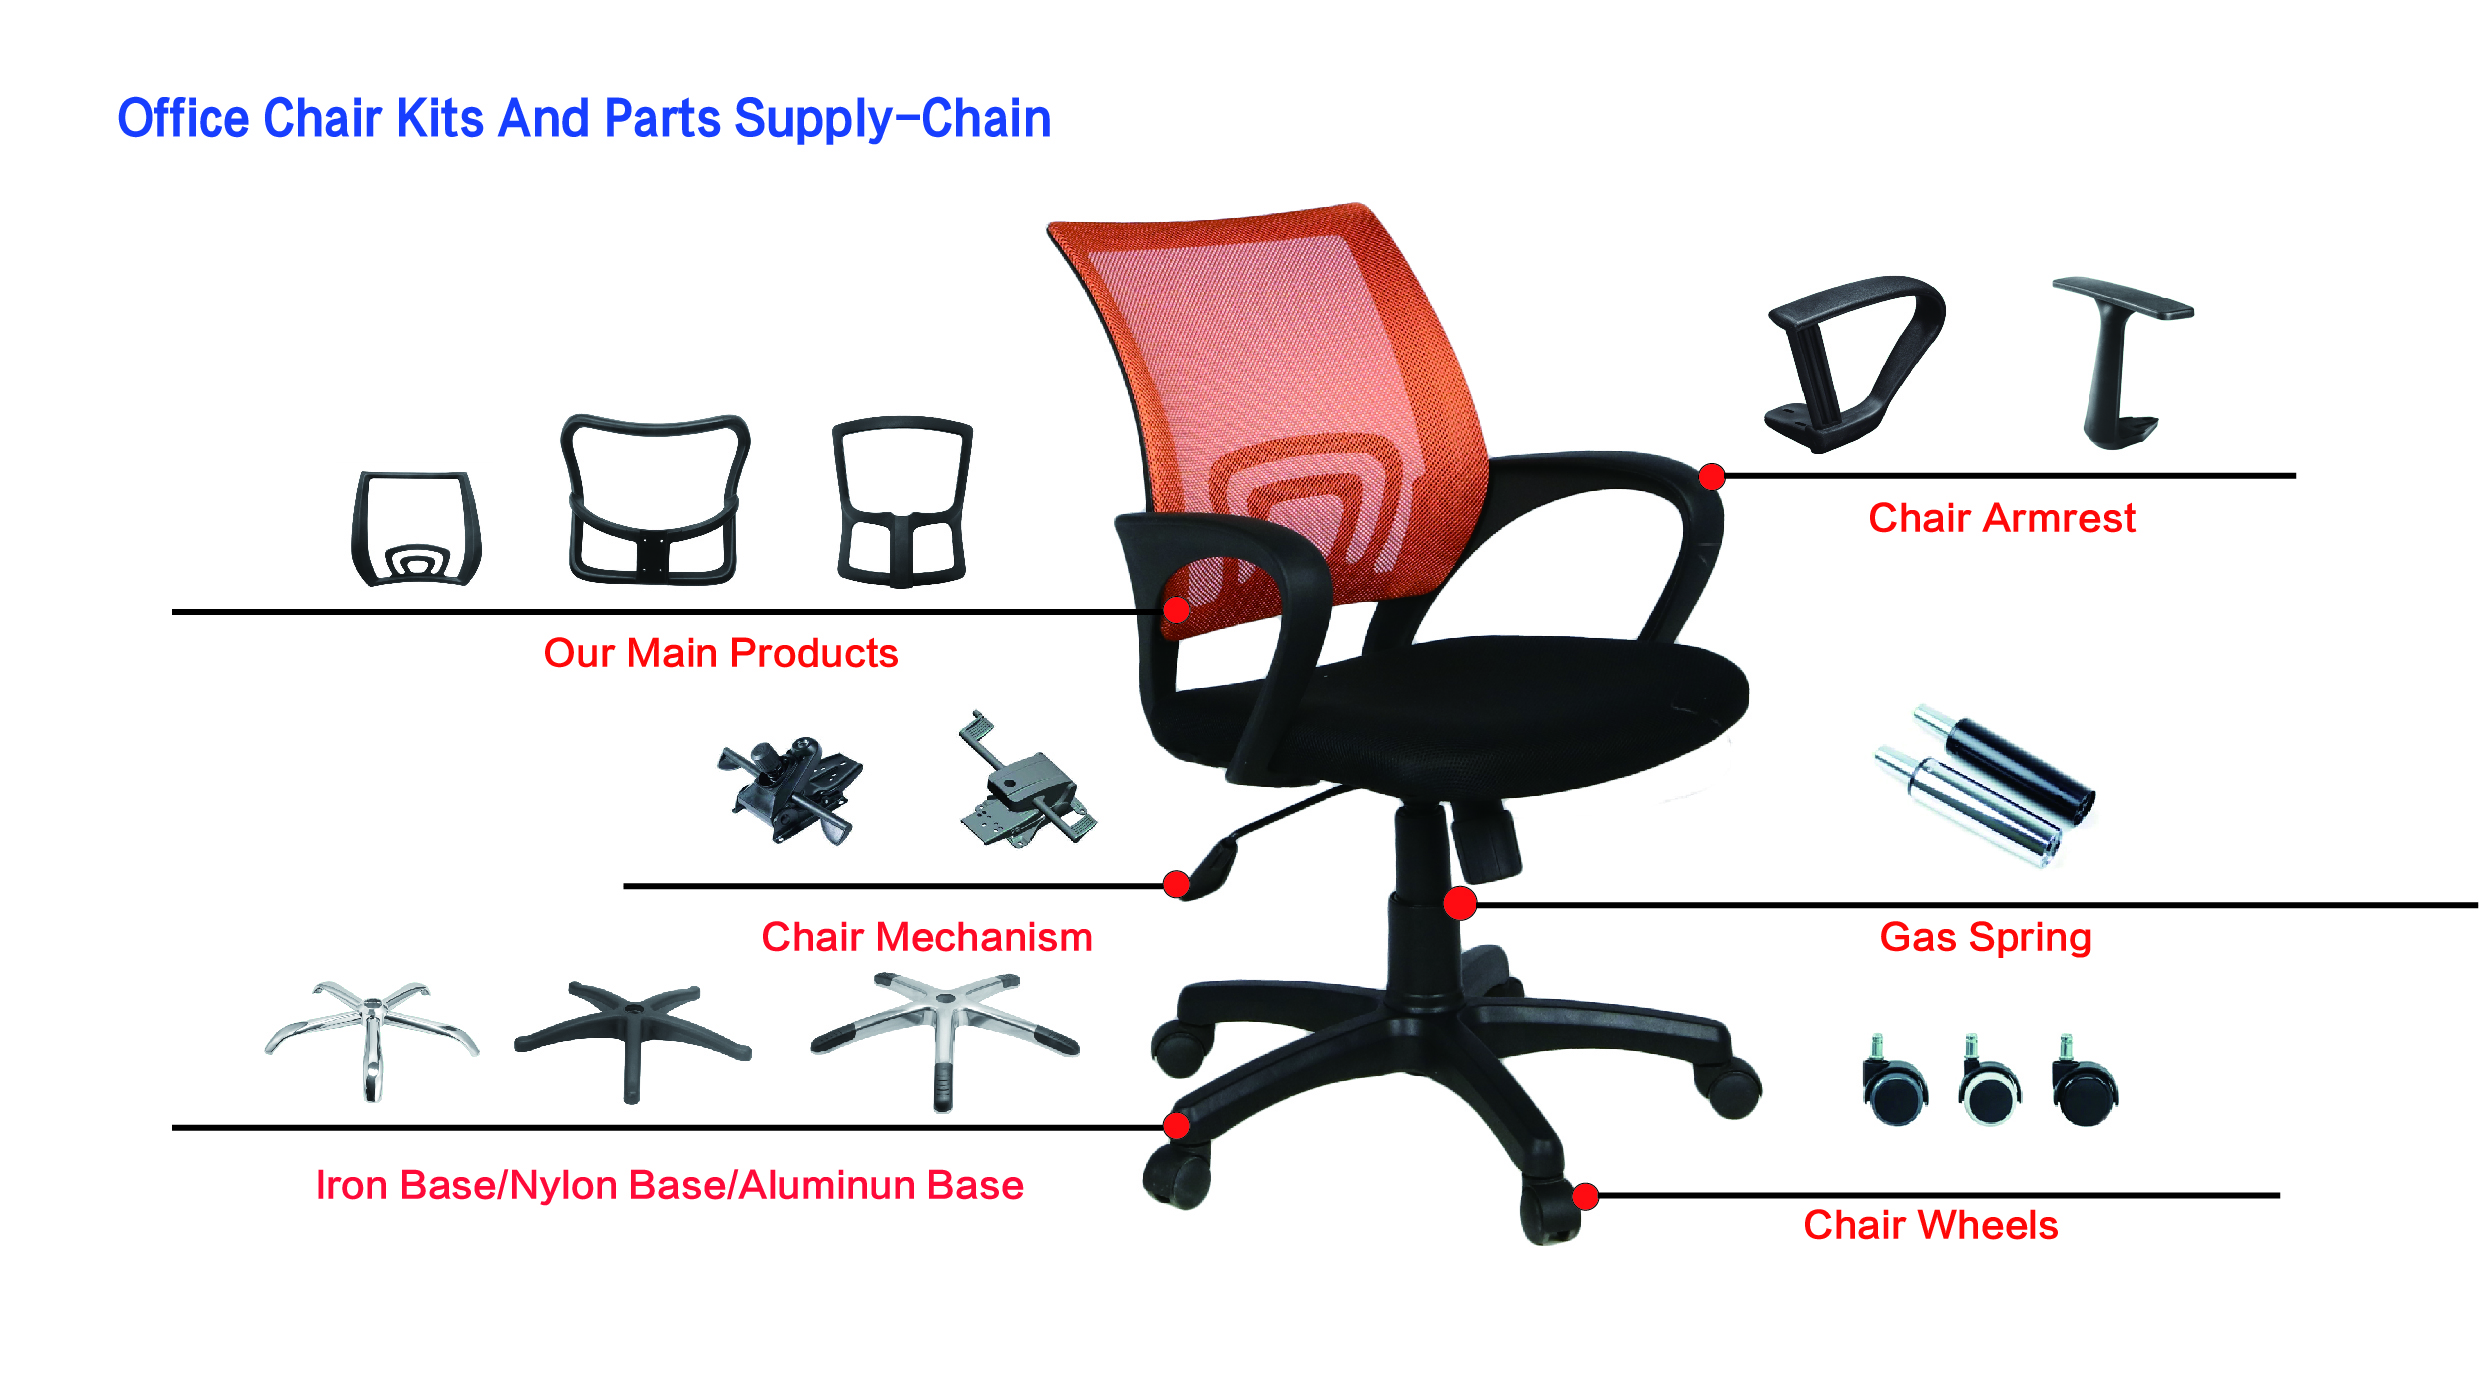 Our Main Products.jpg